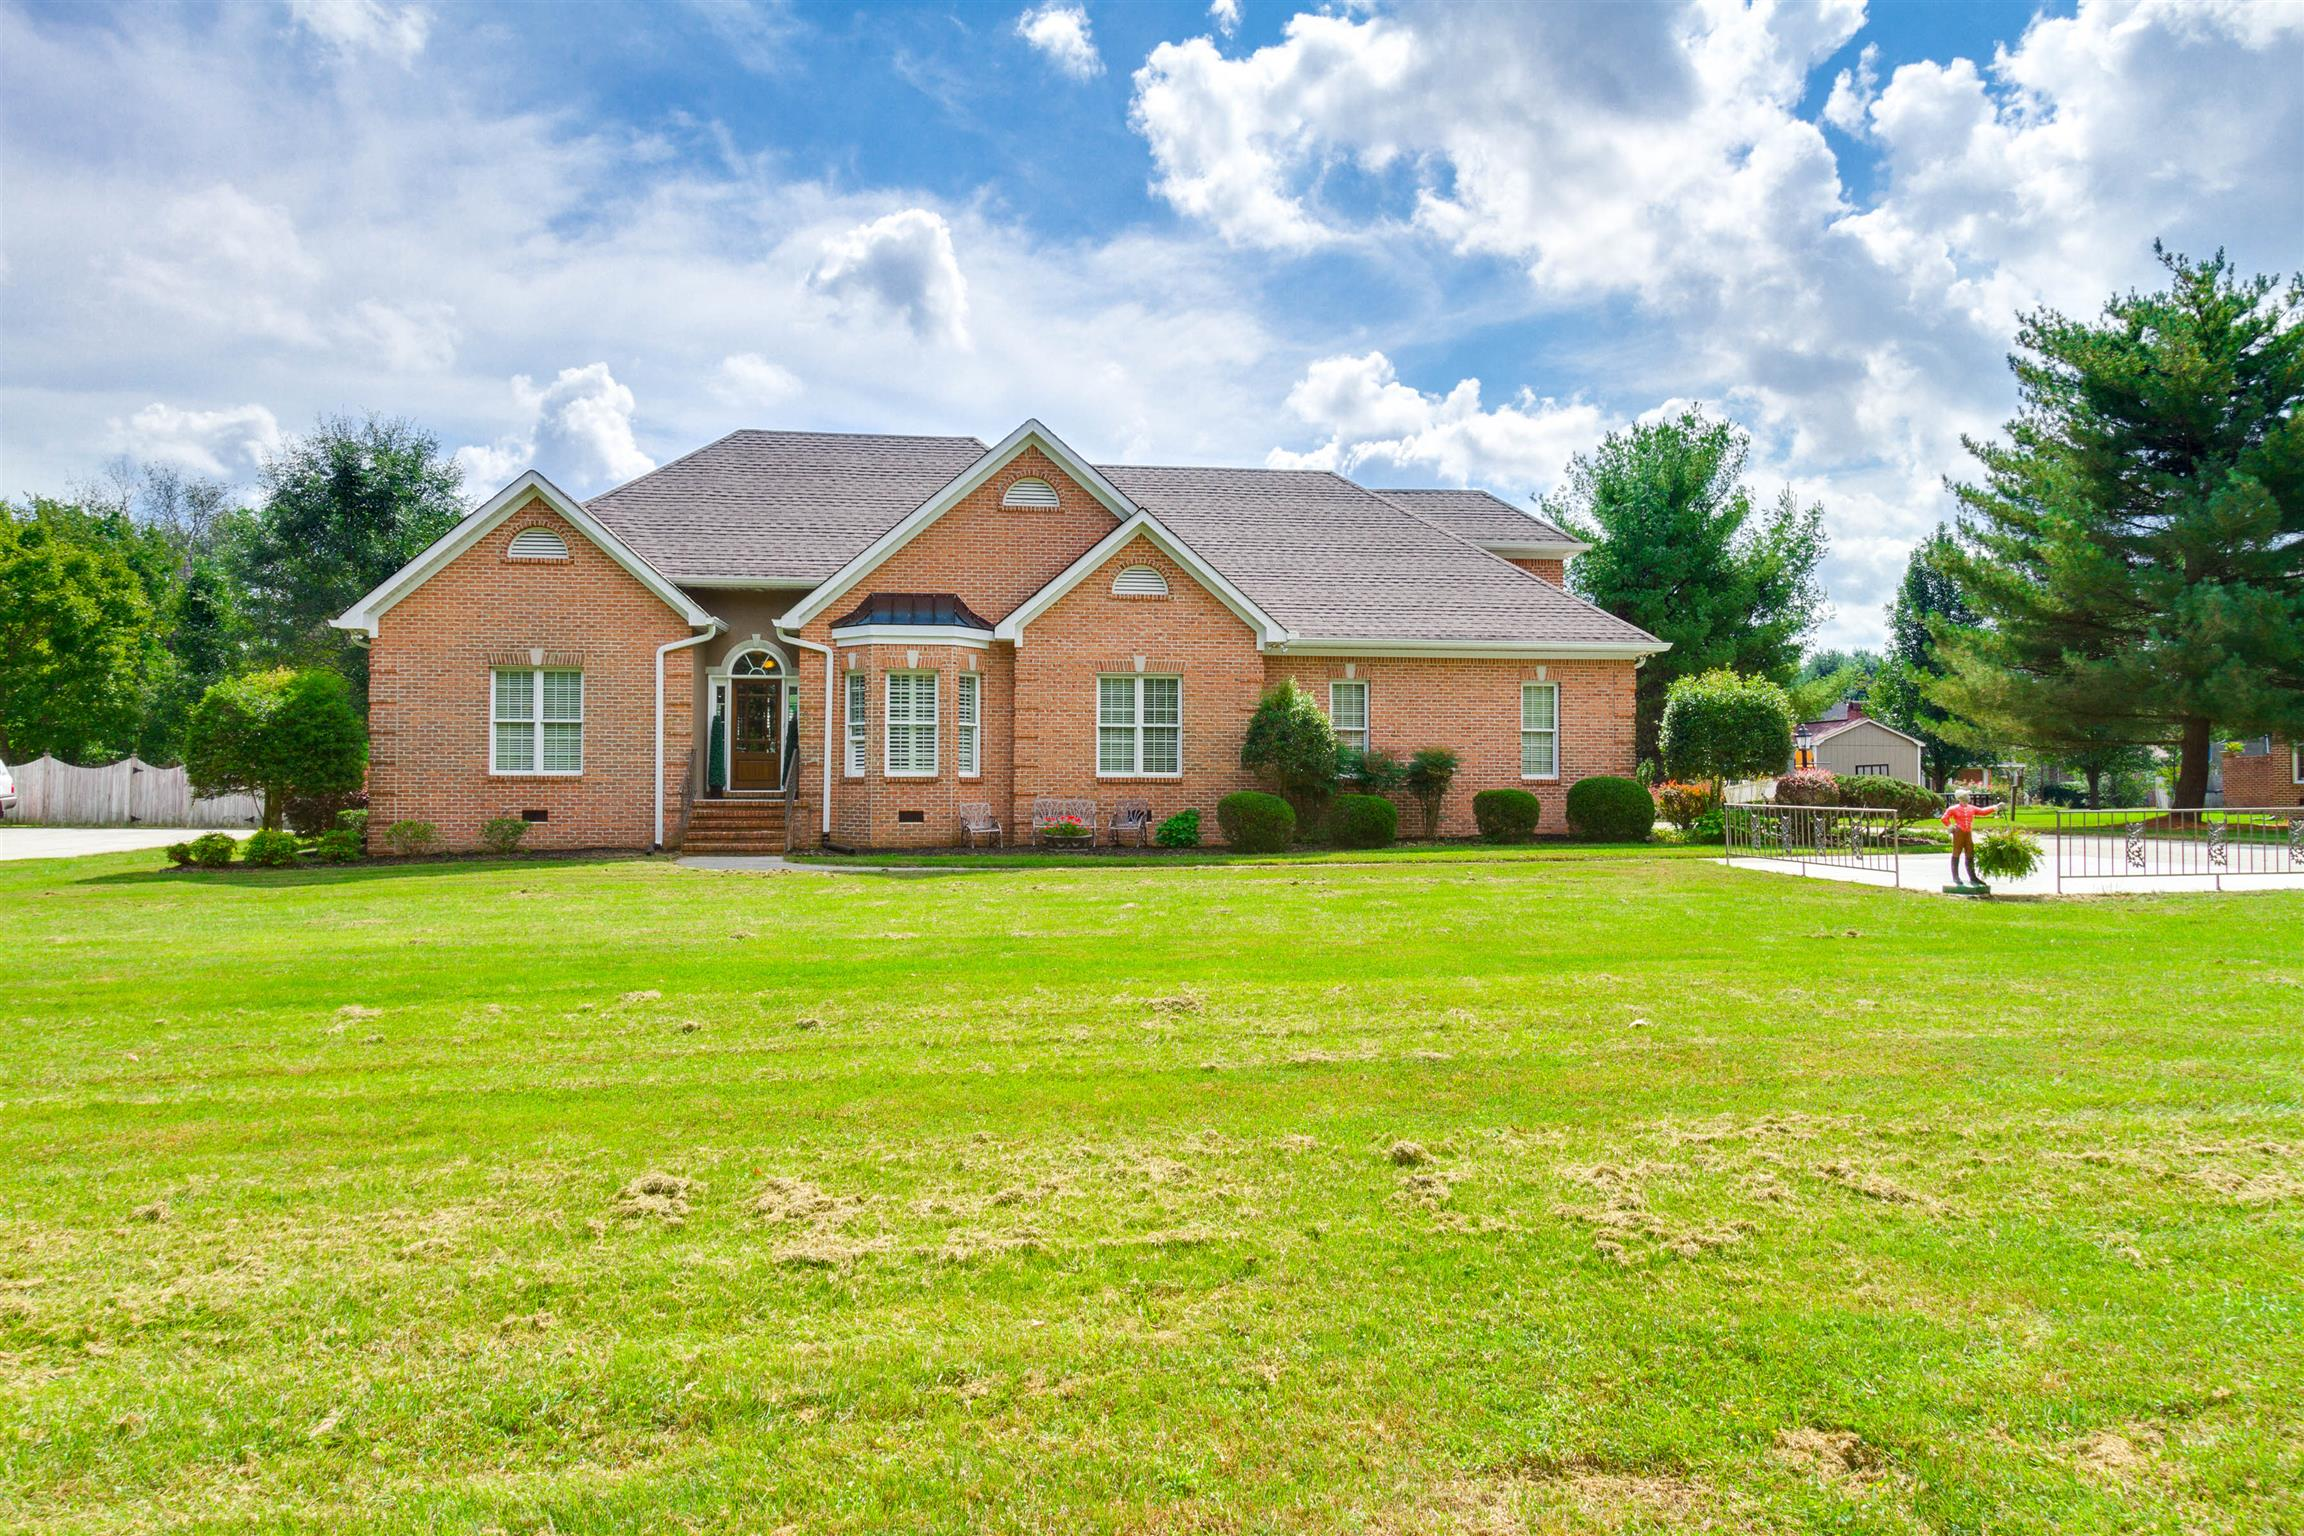 336 Short Springs Rd, Tullahoma, Tennessee